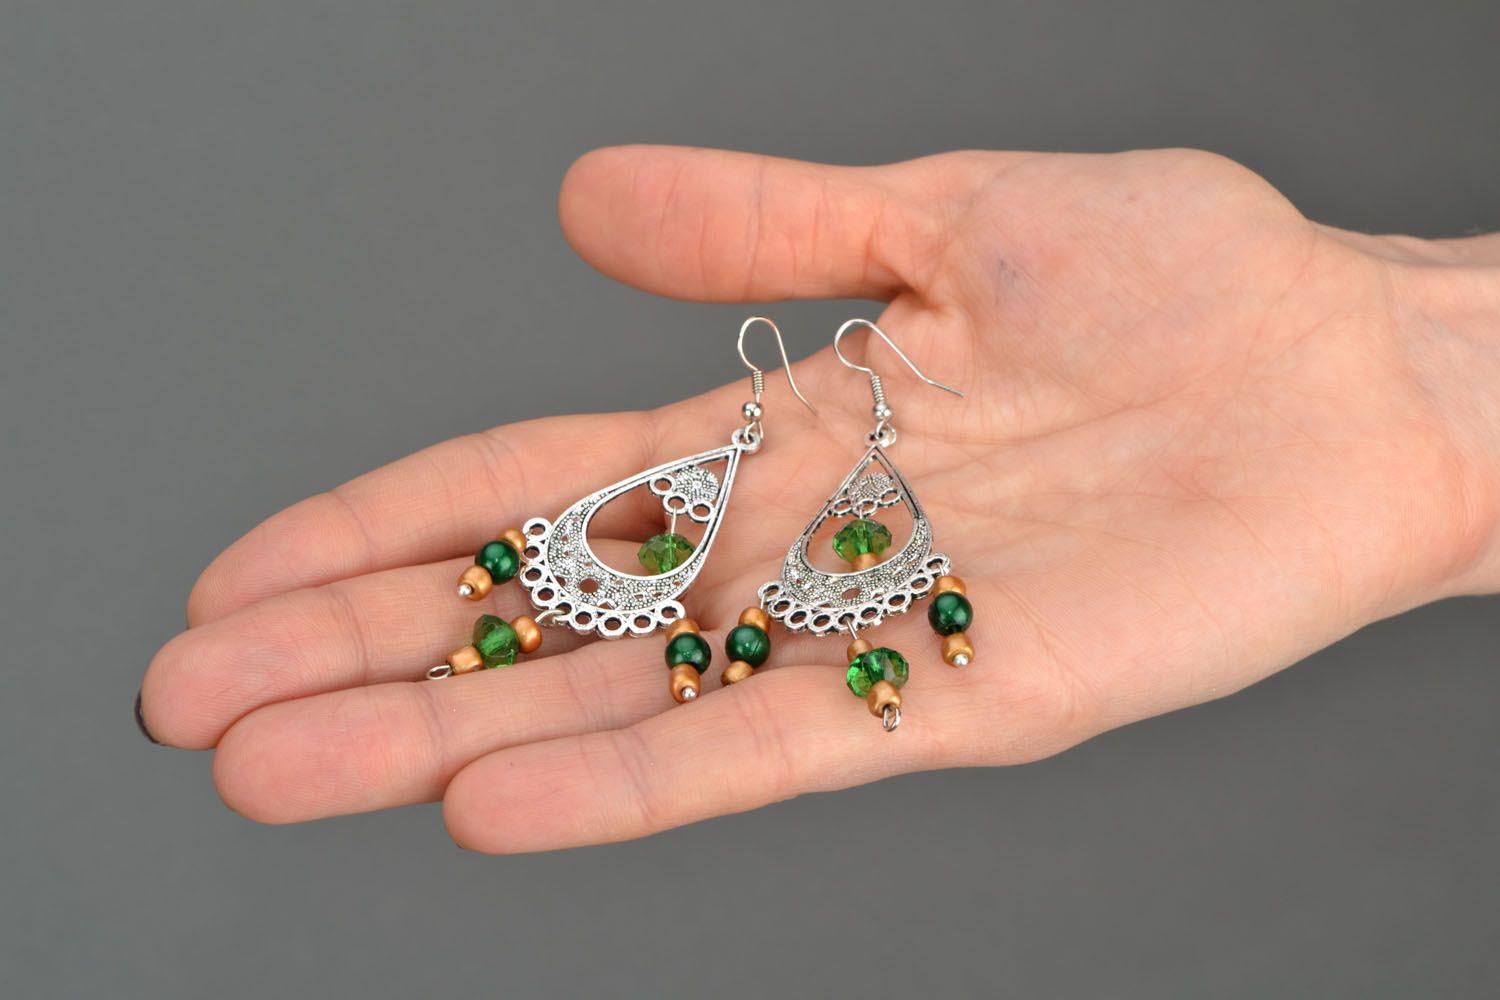 Long earrings in Eastern style photo 2